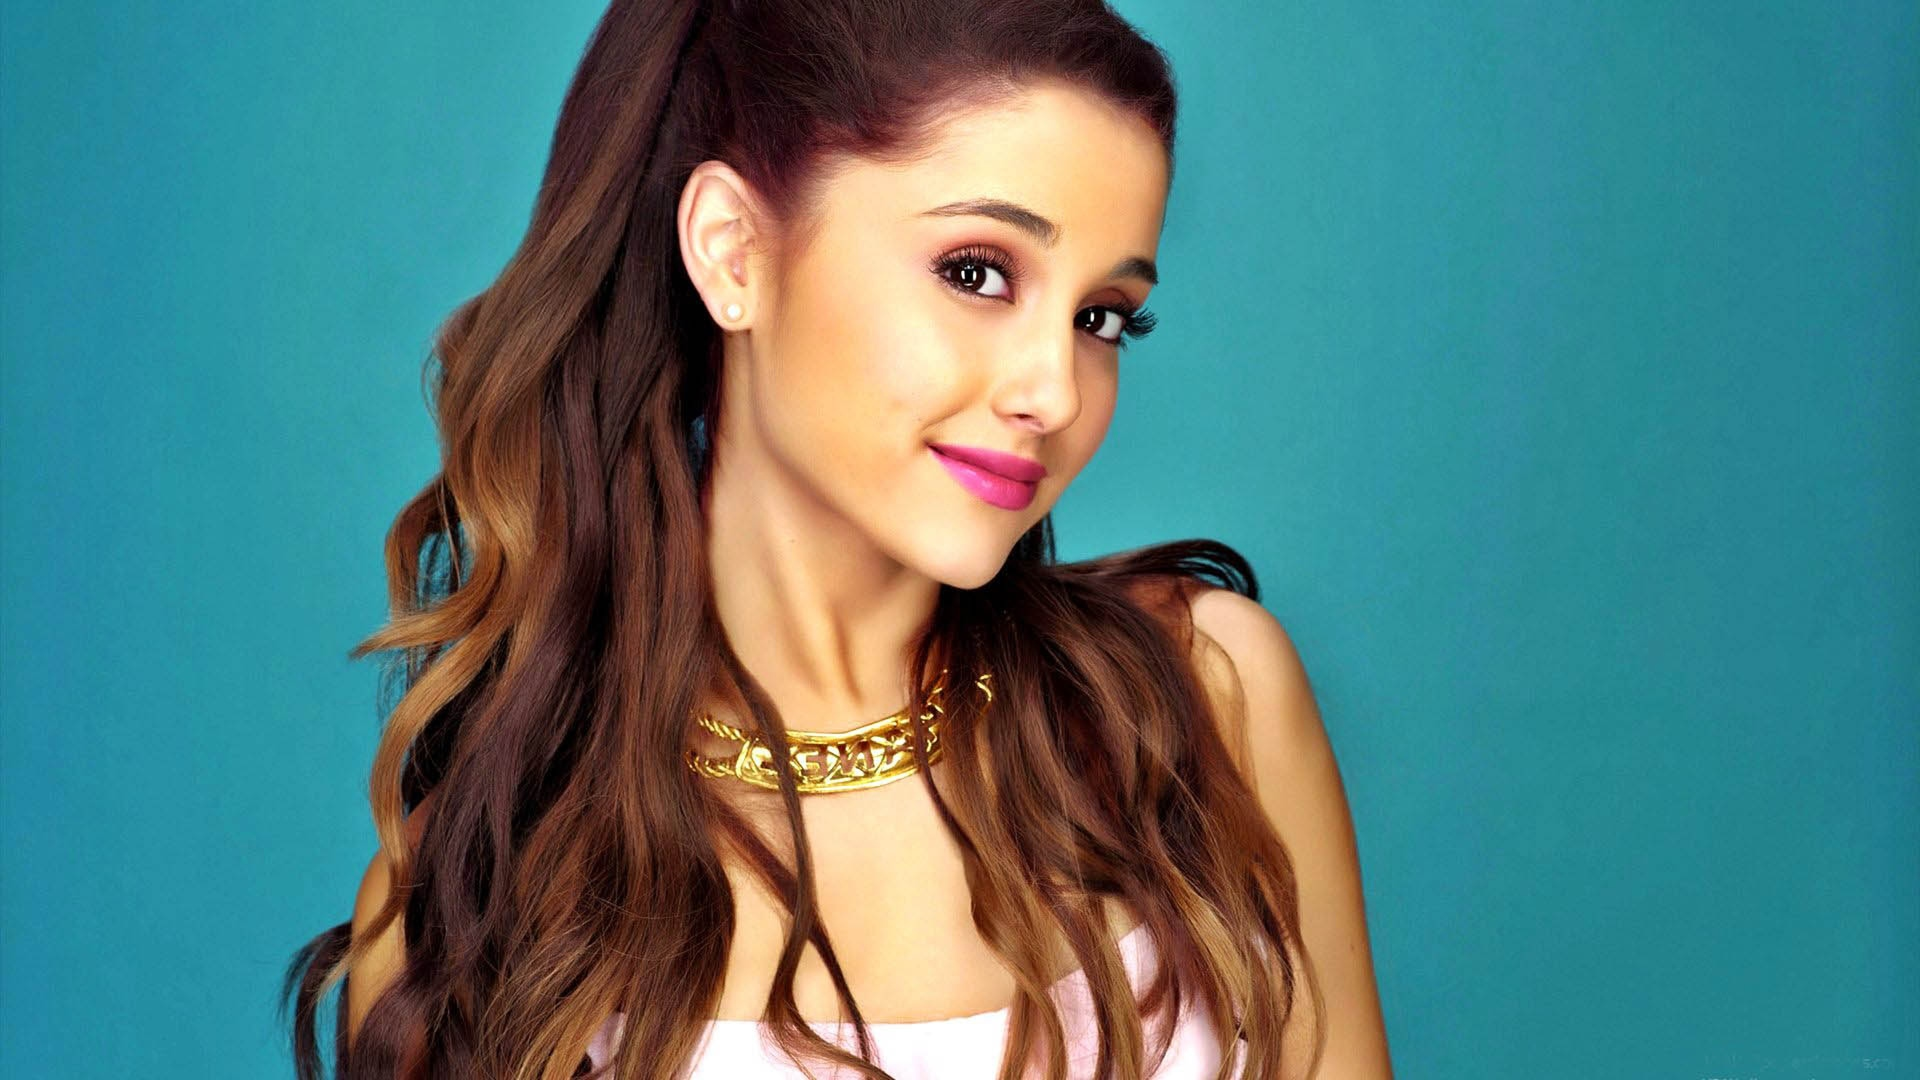 1920x1080 ariana grande cute laptop full hd 1080p hd 4k wallpapers